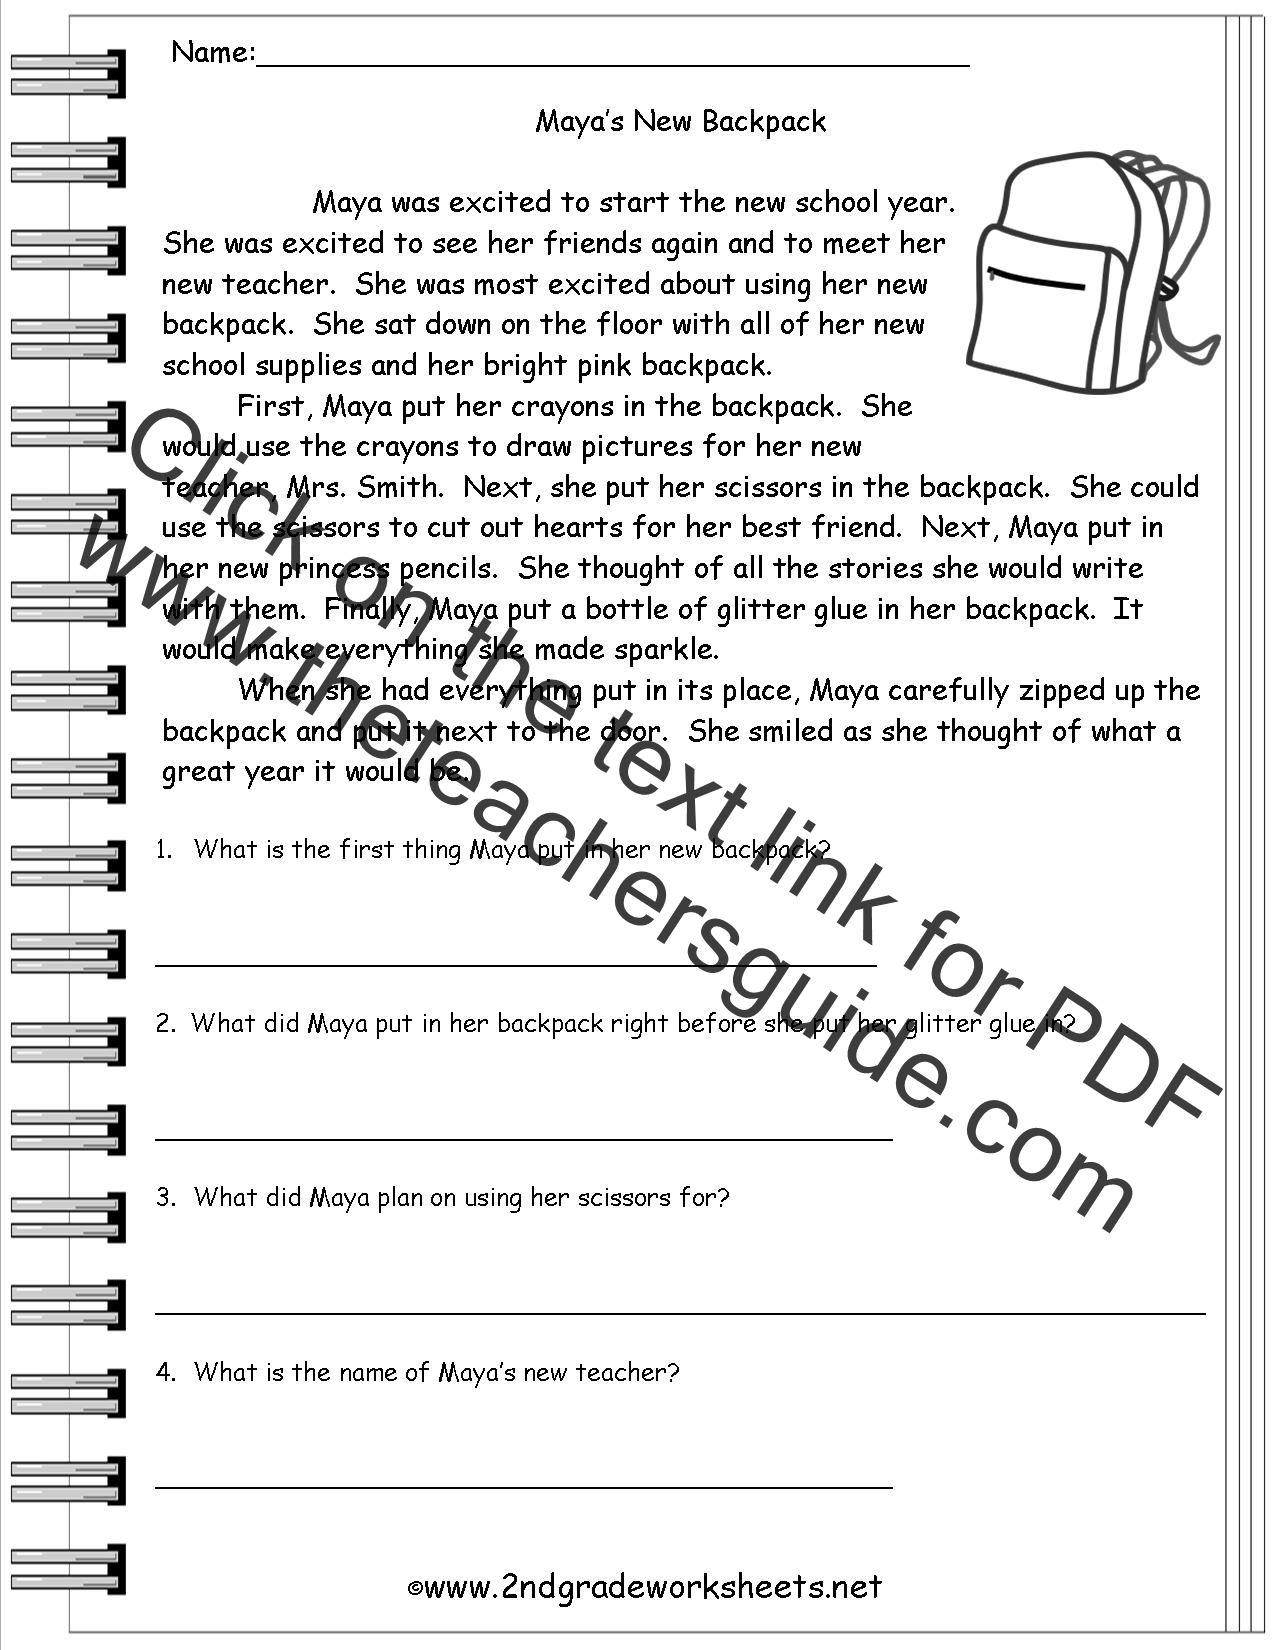 Worksheets Grade 2 Reading Comprehension Worksheets reading worksheeets worksheets